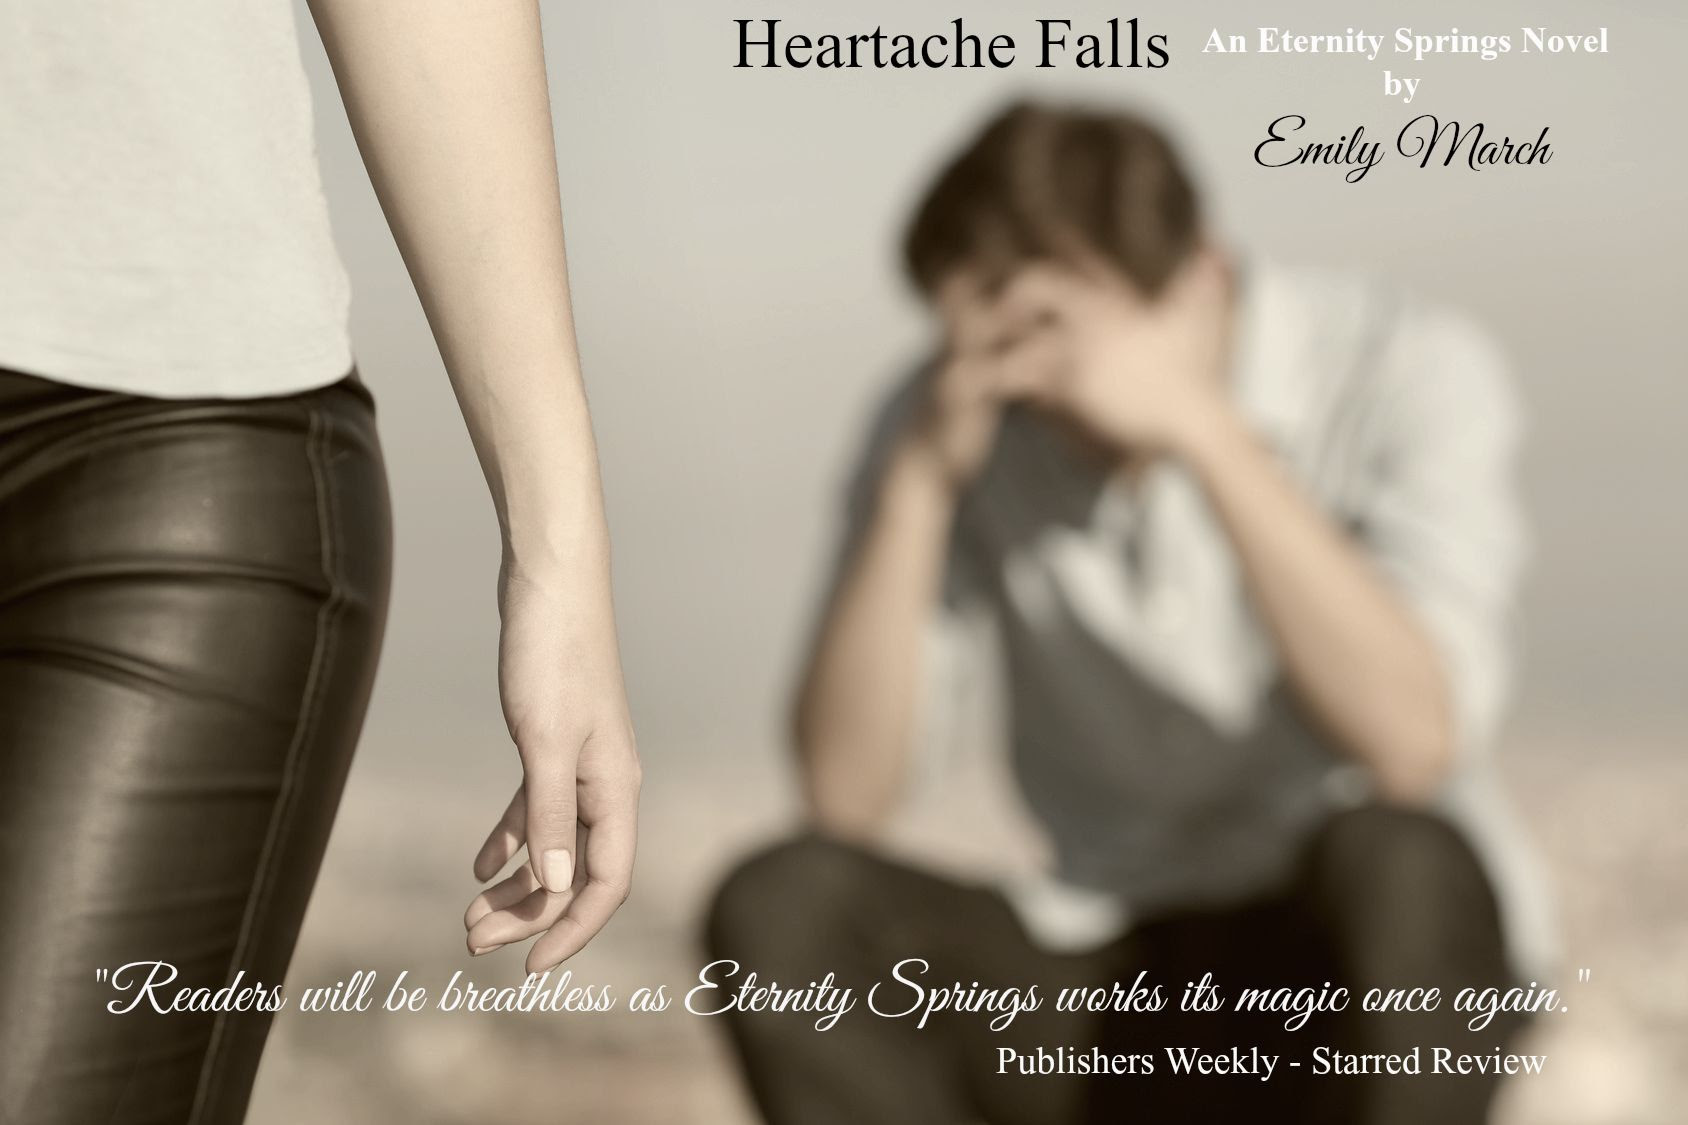 A photo teaser with reviewer's quote for Heartache Falls, by Emily March